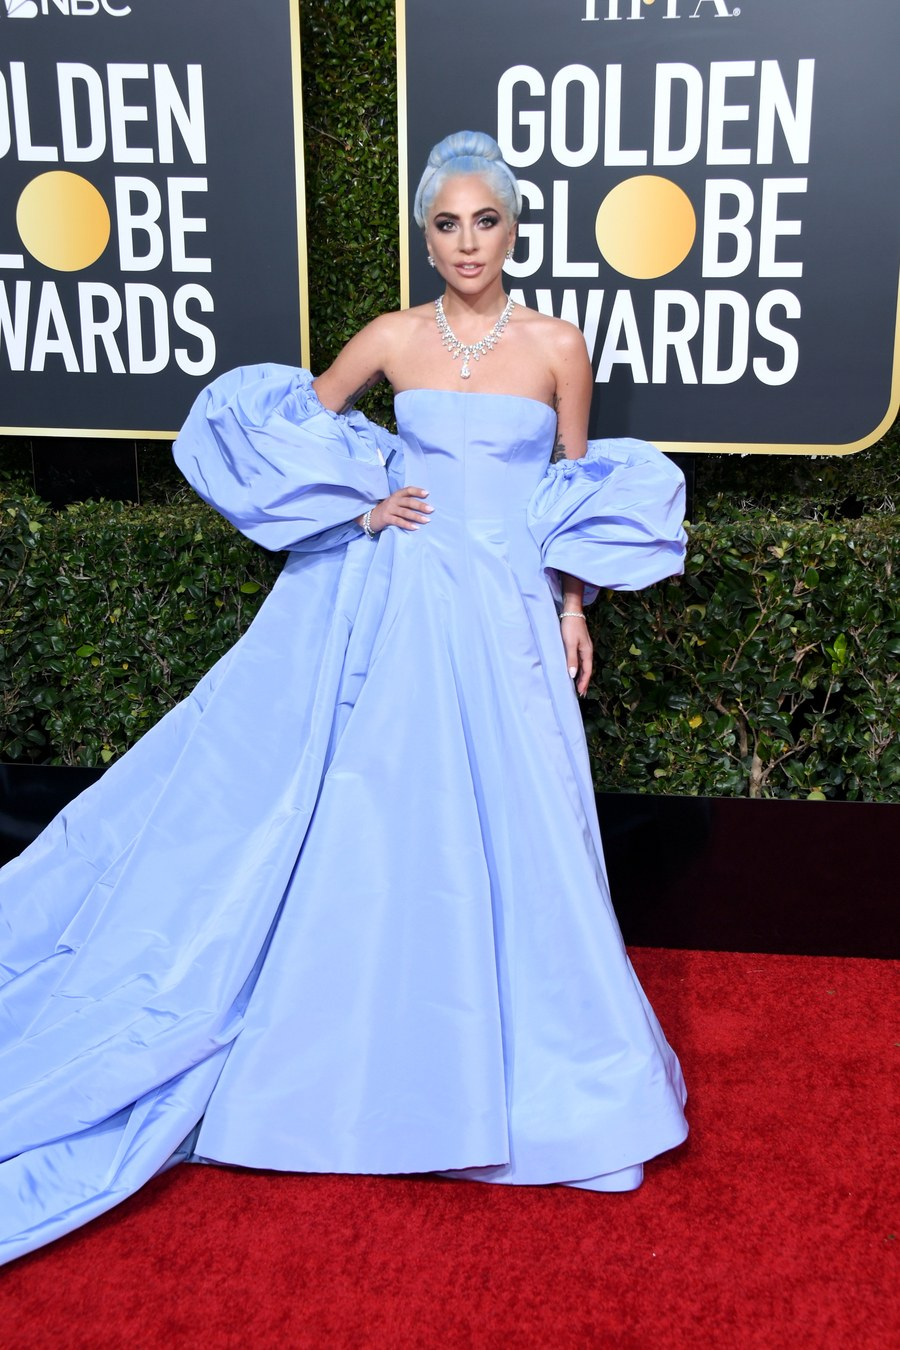 Lady Gaga wins overall best dressed wearing a Cutom Valentino Couture gown